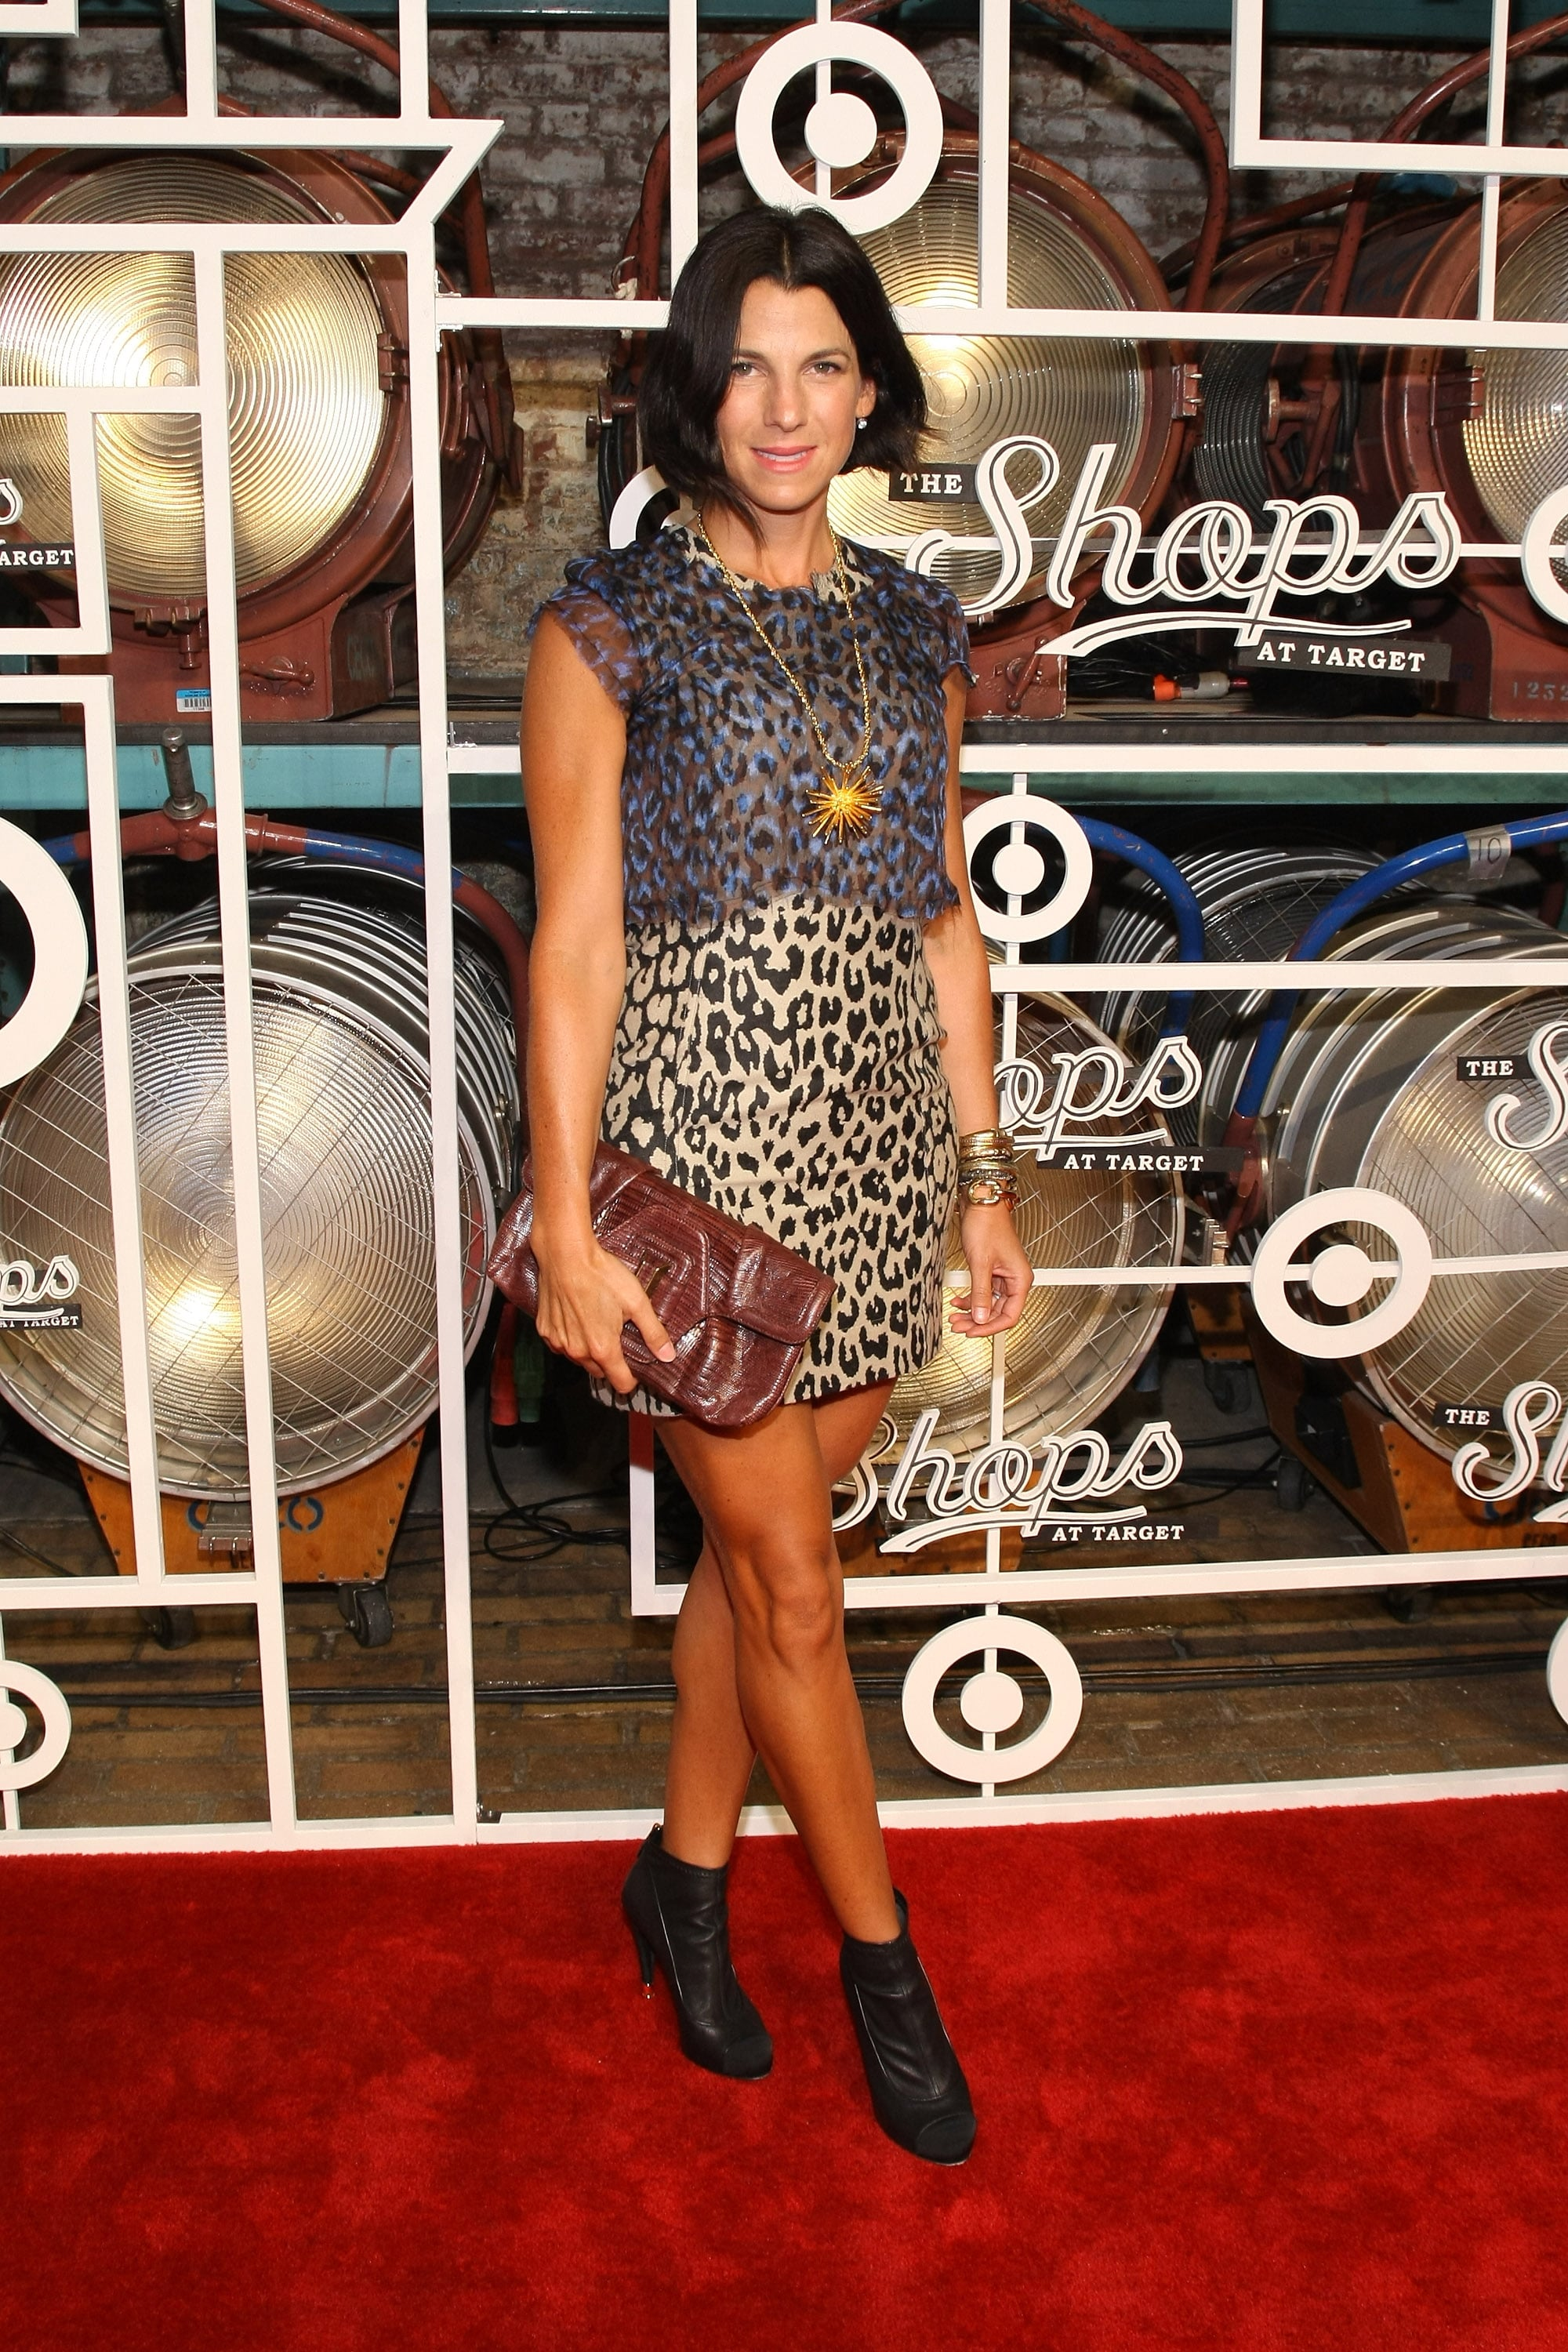 Jessica Seinfeld showed off a wild print at the Shops at Target.